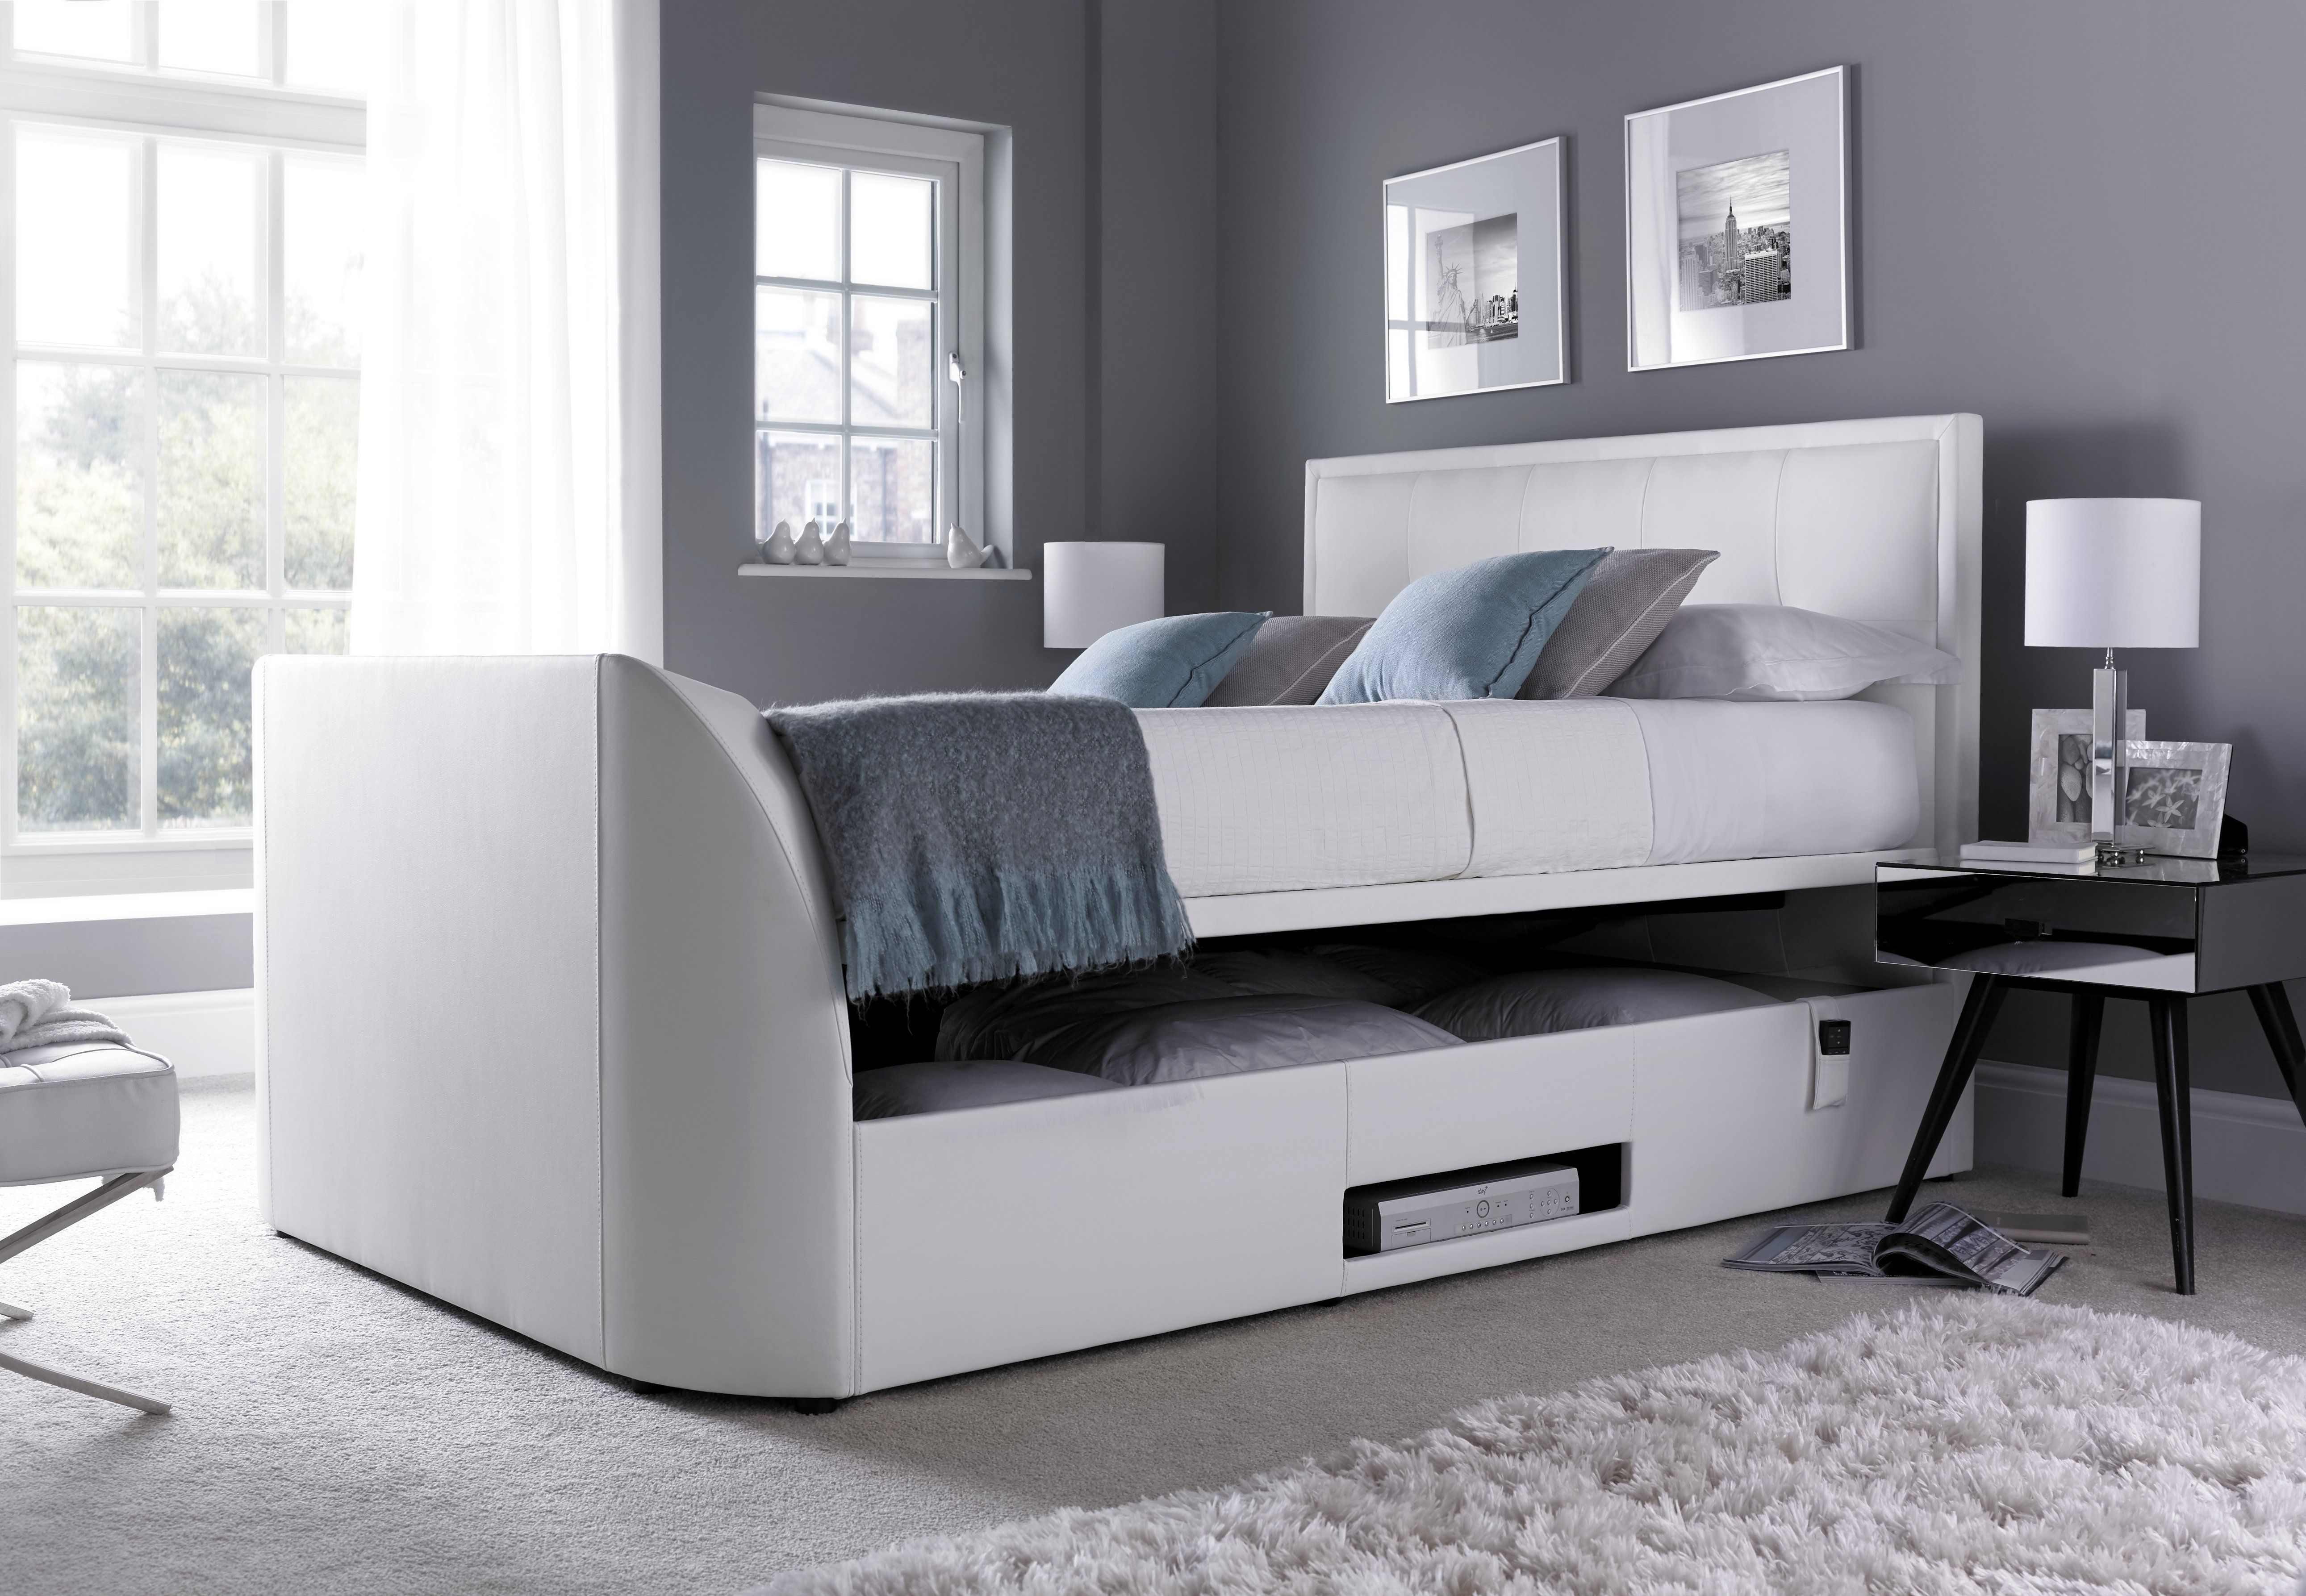 King Size Tv Bed The Windermere King Size Tv Bed The Windermere Electric Tv Bed Is